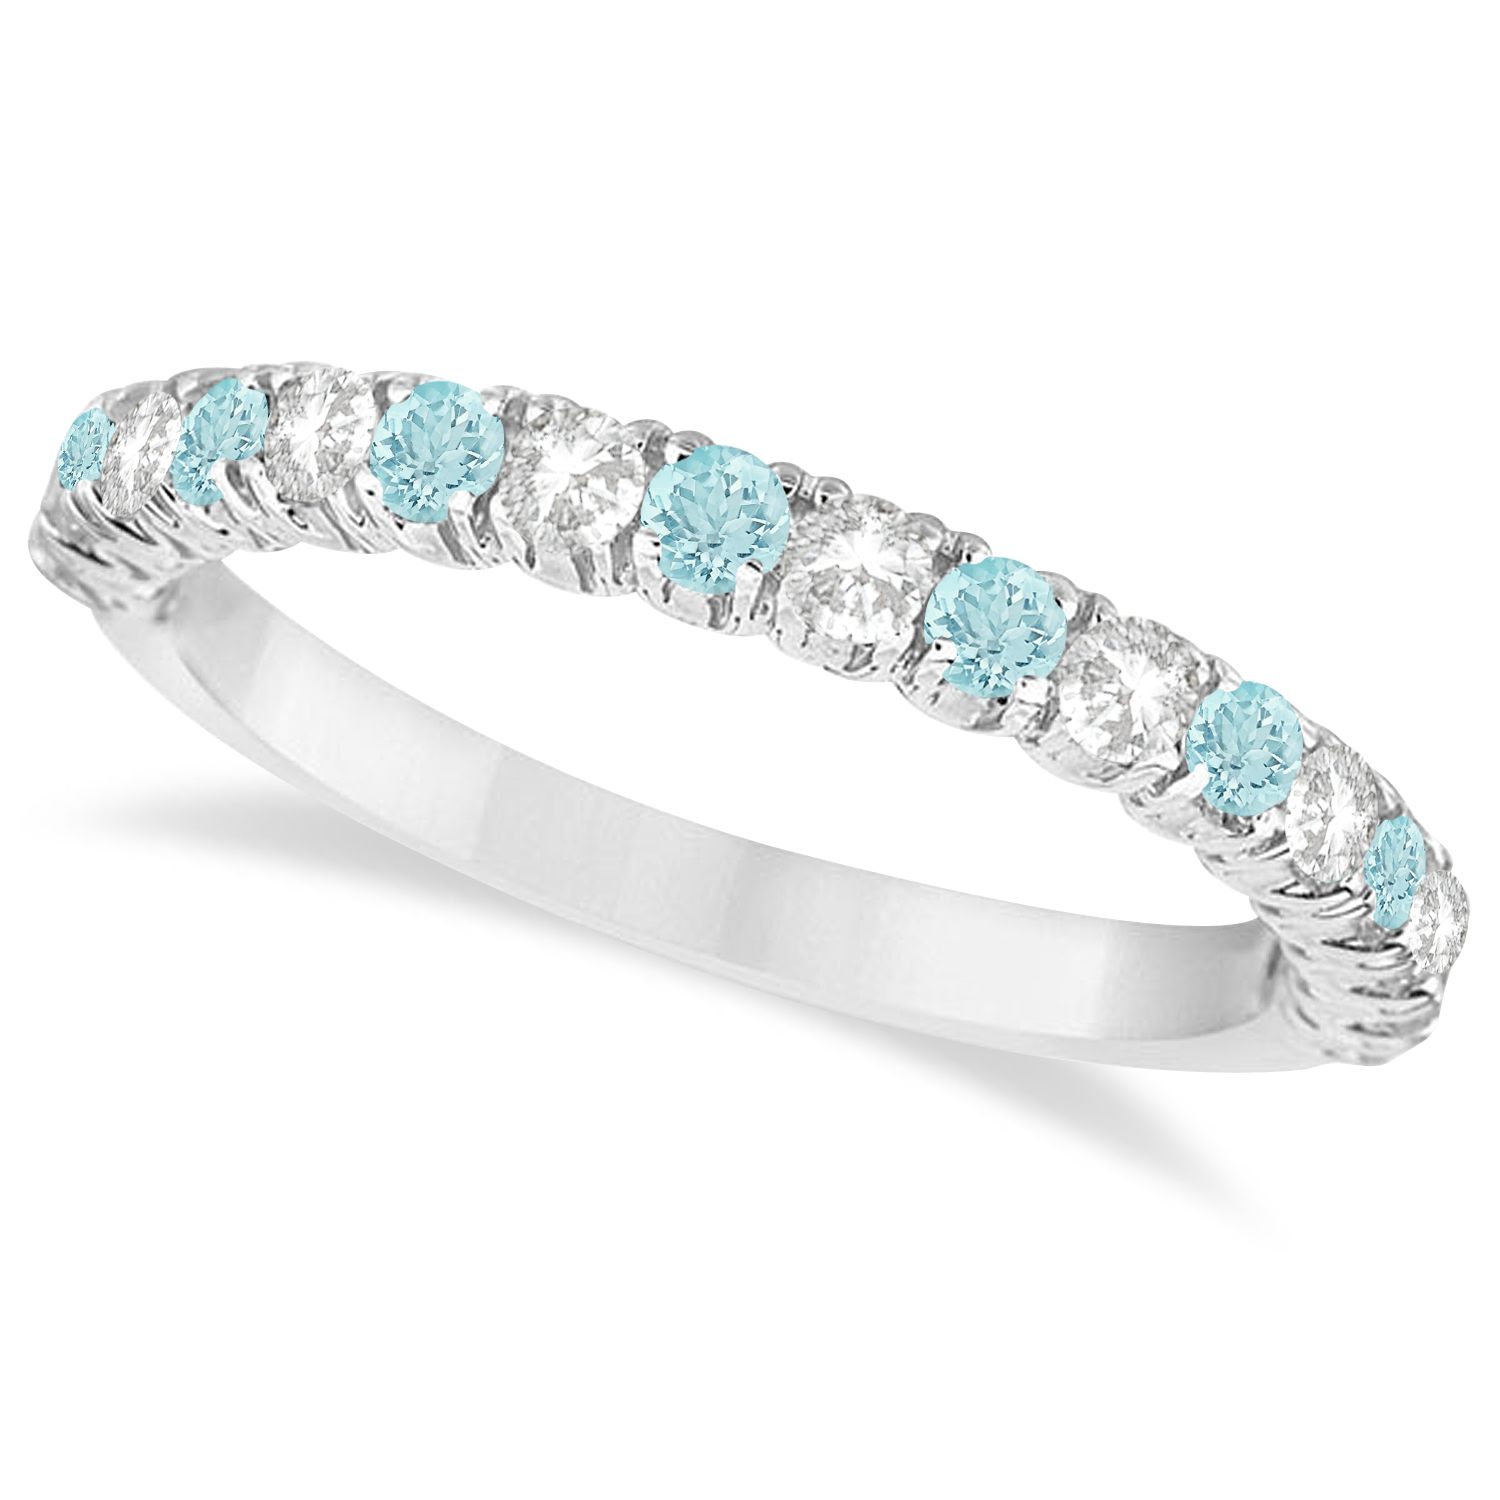 Aquamarine diamond wedding band anniversary ring 14k for Wedding rings aquamarine